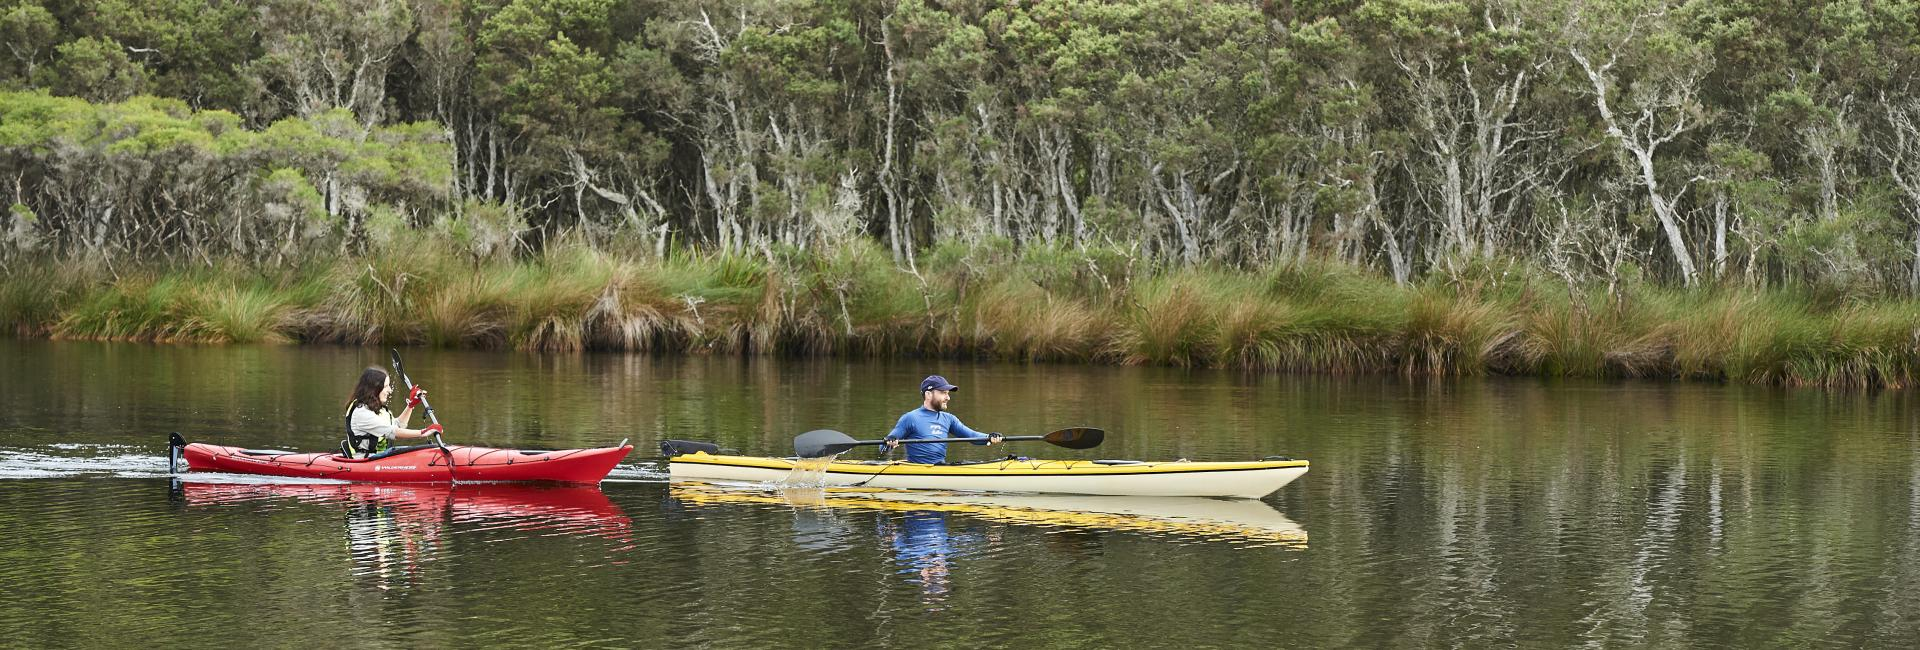 Canoeing on Blackwood River in Australias South West